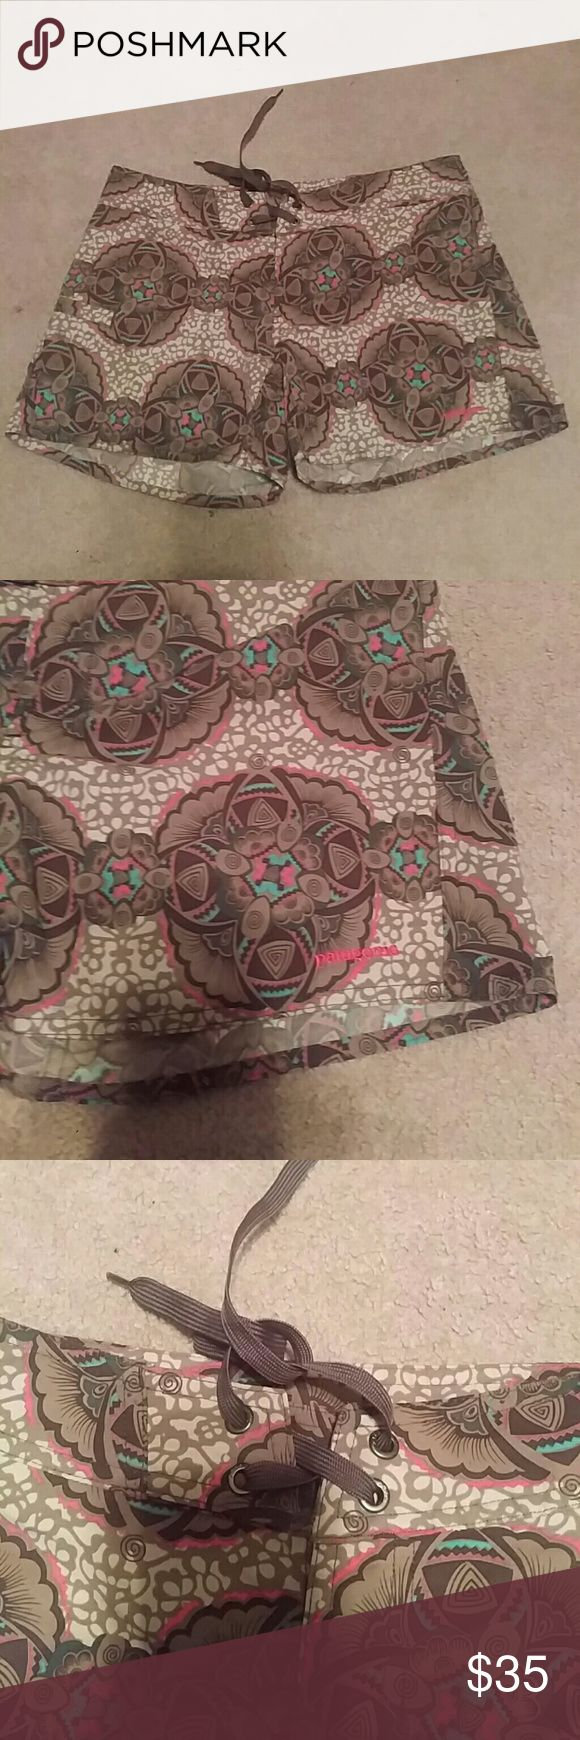 EUC! Patagonia Nylon Women's Swim Tie Up Shorts EUC! Patagonia Nylon Women's Tie Up Shorts Beautiful pair of shorts in brown, pink, cream, green and turquoise. Swim board shorts...go ahead get your surf on! Sz. 4 Patagonia Shorts